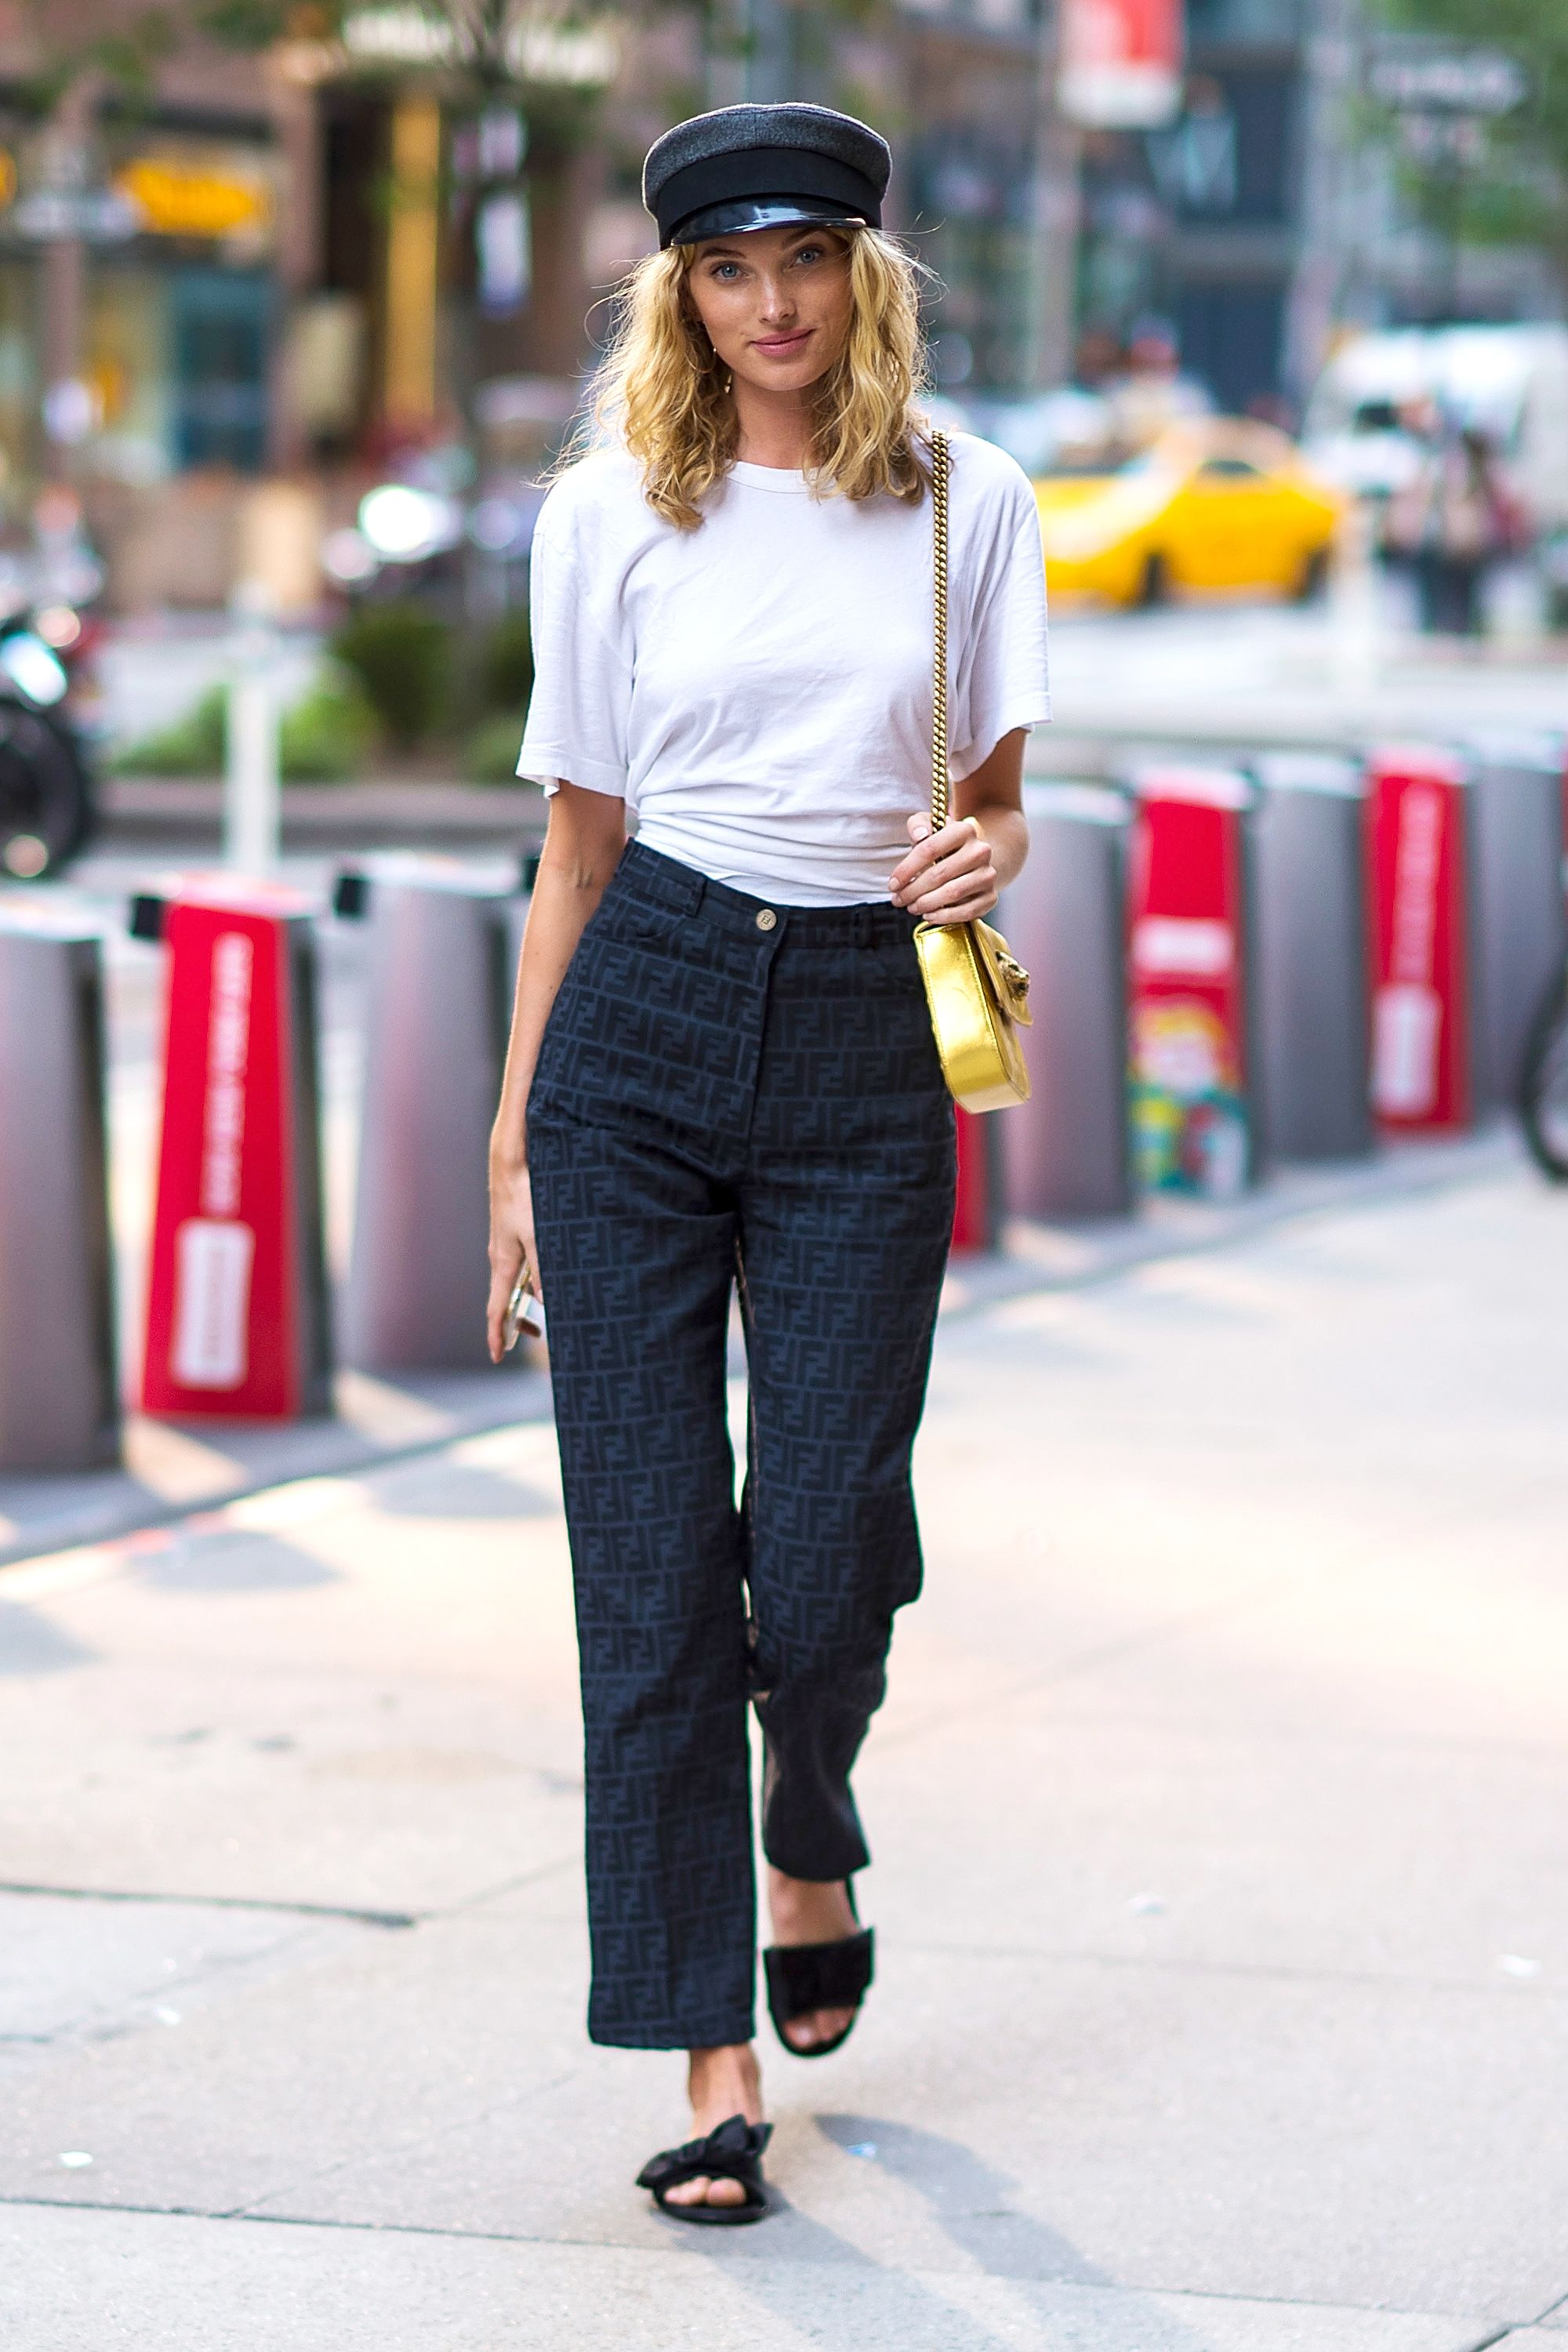 Le Fashion Blog Elsa Hosk Baker Boy Hat White T Shirt High Waist Pants Black Slides Via Harpers Bazaar